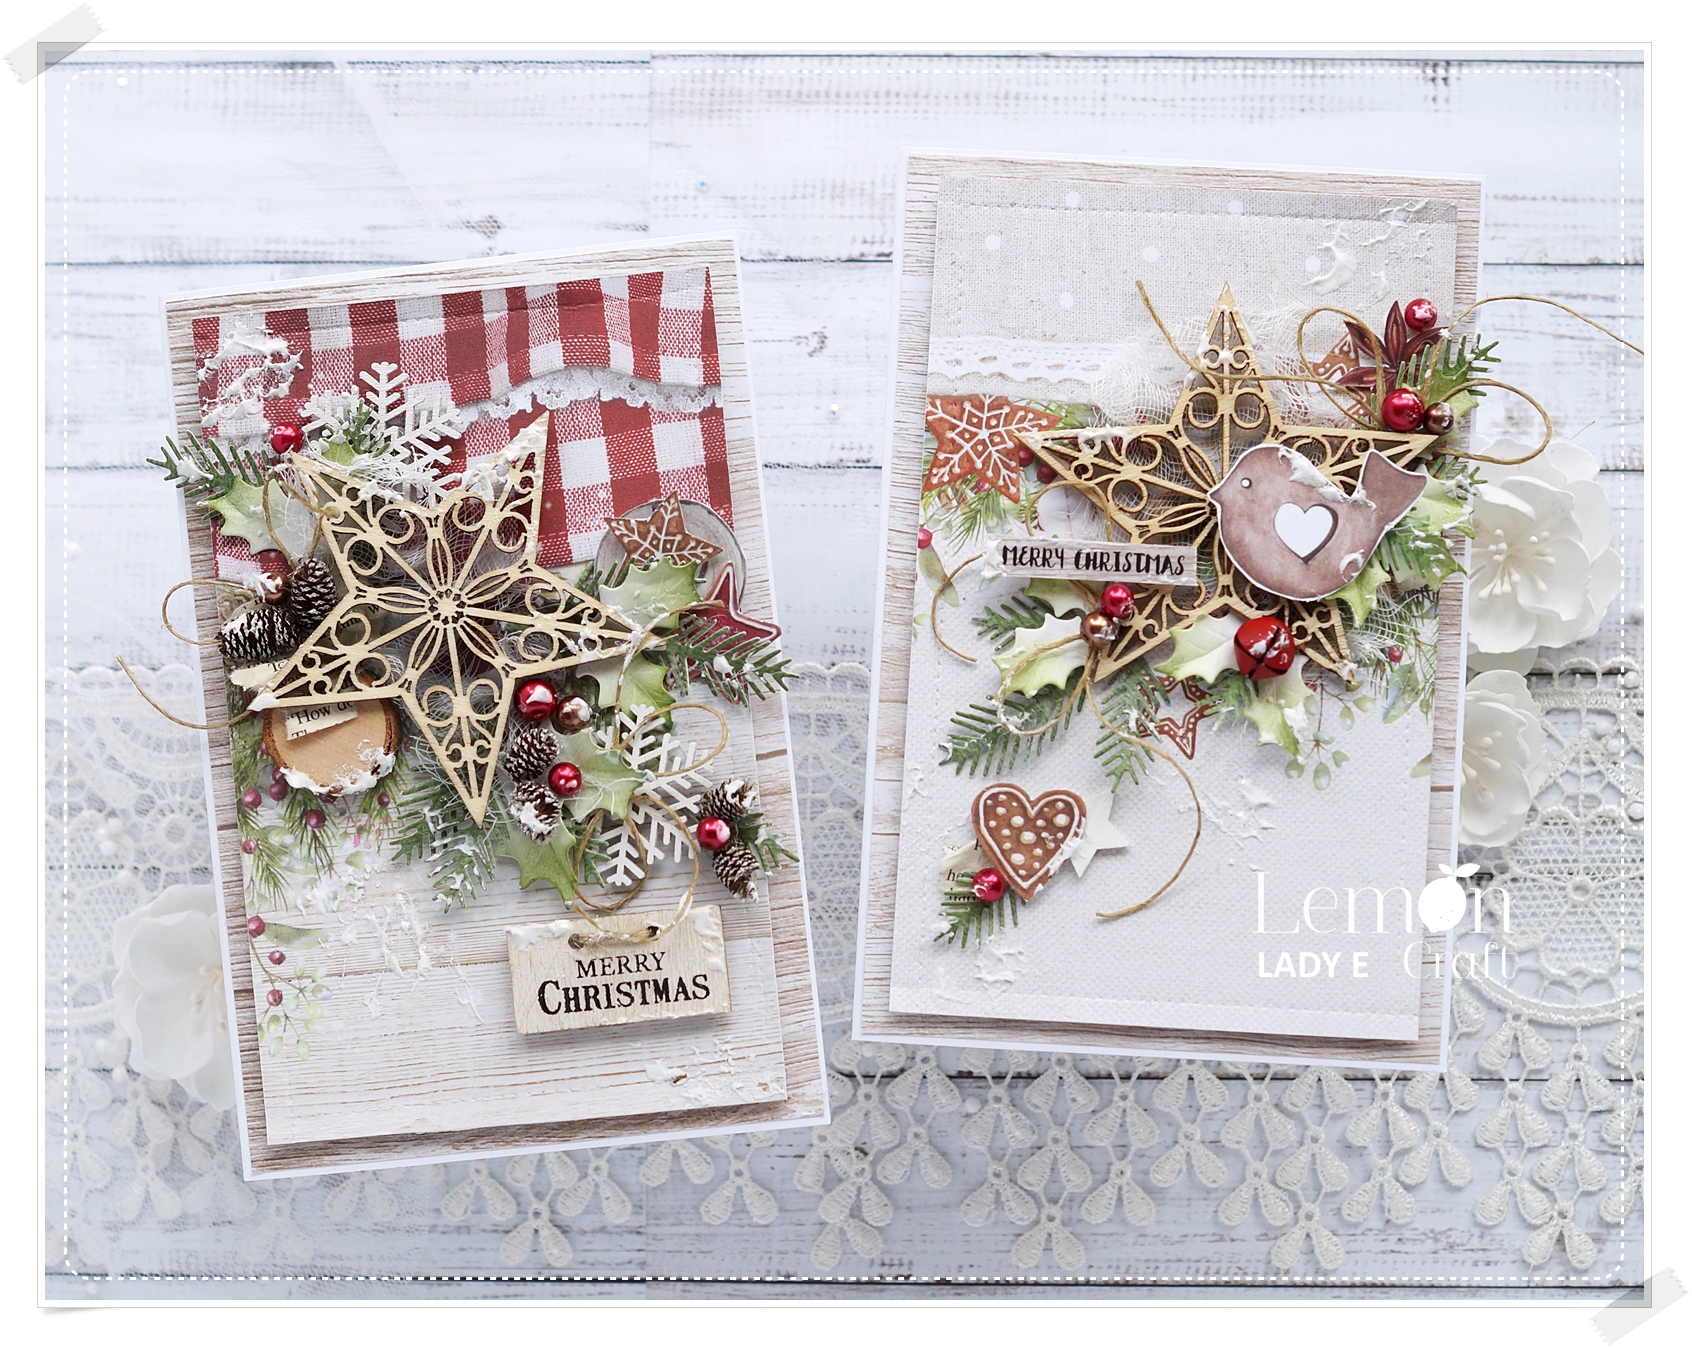 Flat Christmas Cards 2020 To Fit Into Envelope Lady E Design